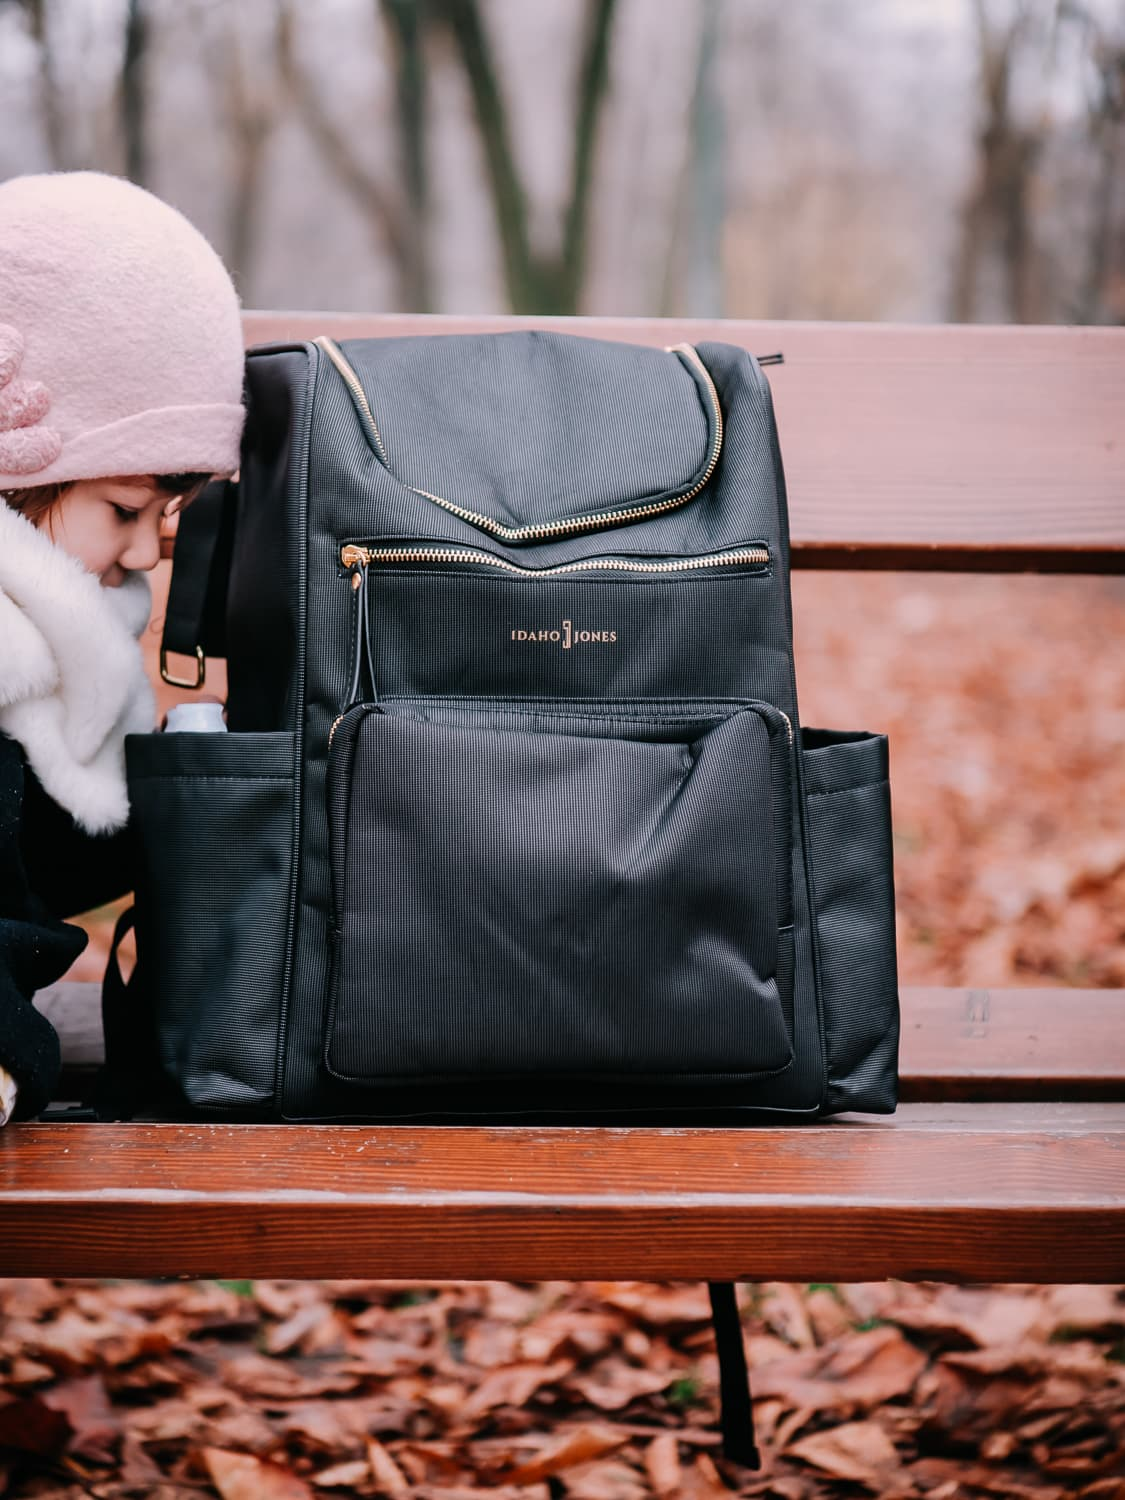 Lisa reviews our Idaho Jones Diaper Bag